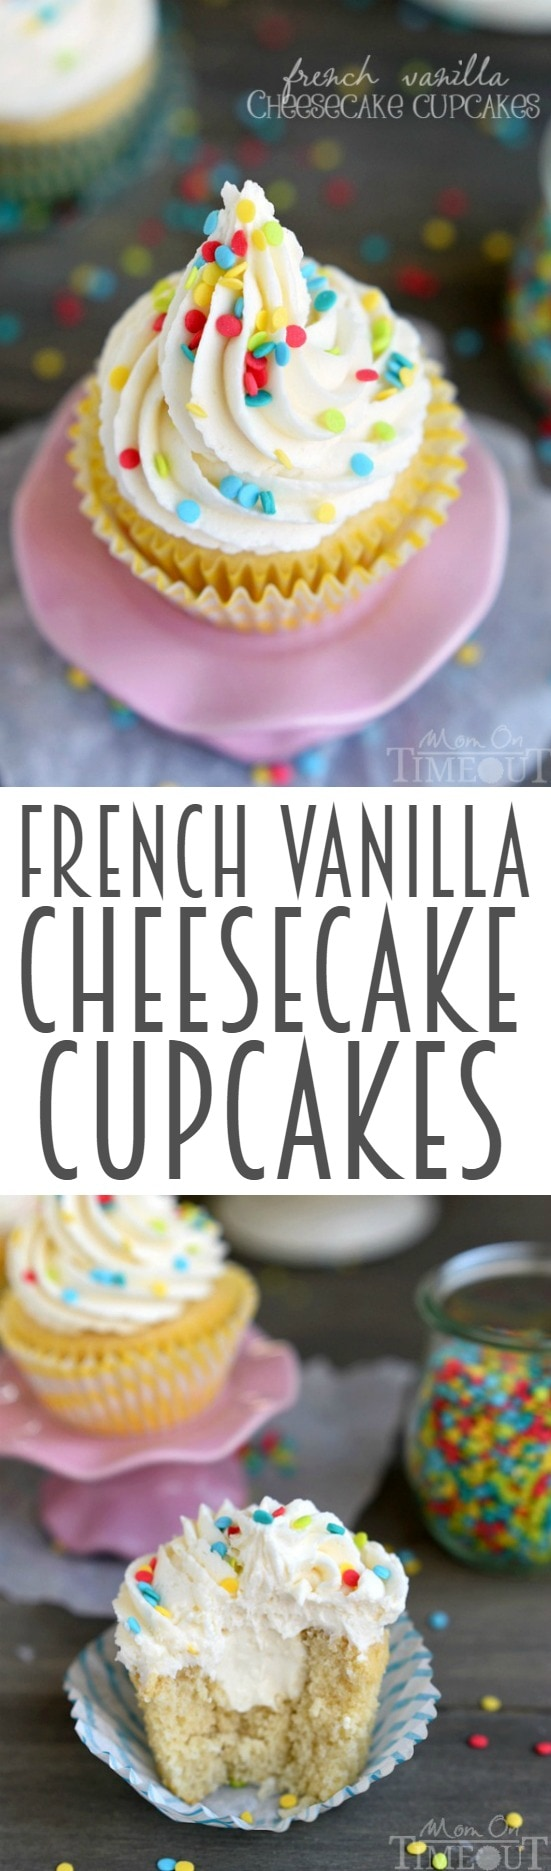 How about French Vanilla Cheesecake Cupcakes for the dessert win? It's like two desserts in one! Cheesecake filling is nestled inside a delicious vanilla cupcake and topped with the most amazing vanilla frosting ever - don't forget the sprinkles!   MomOnTimeout.com